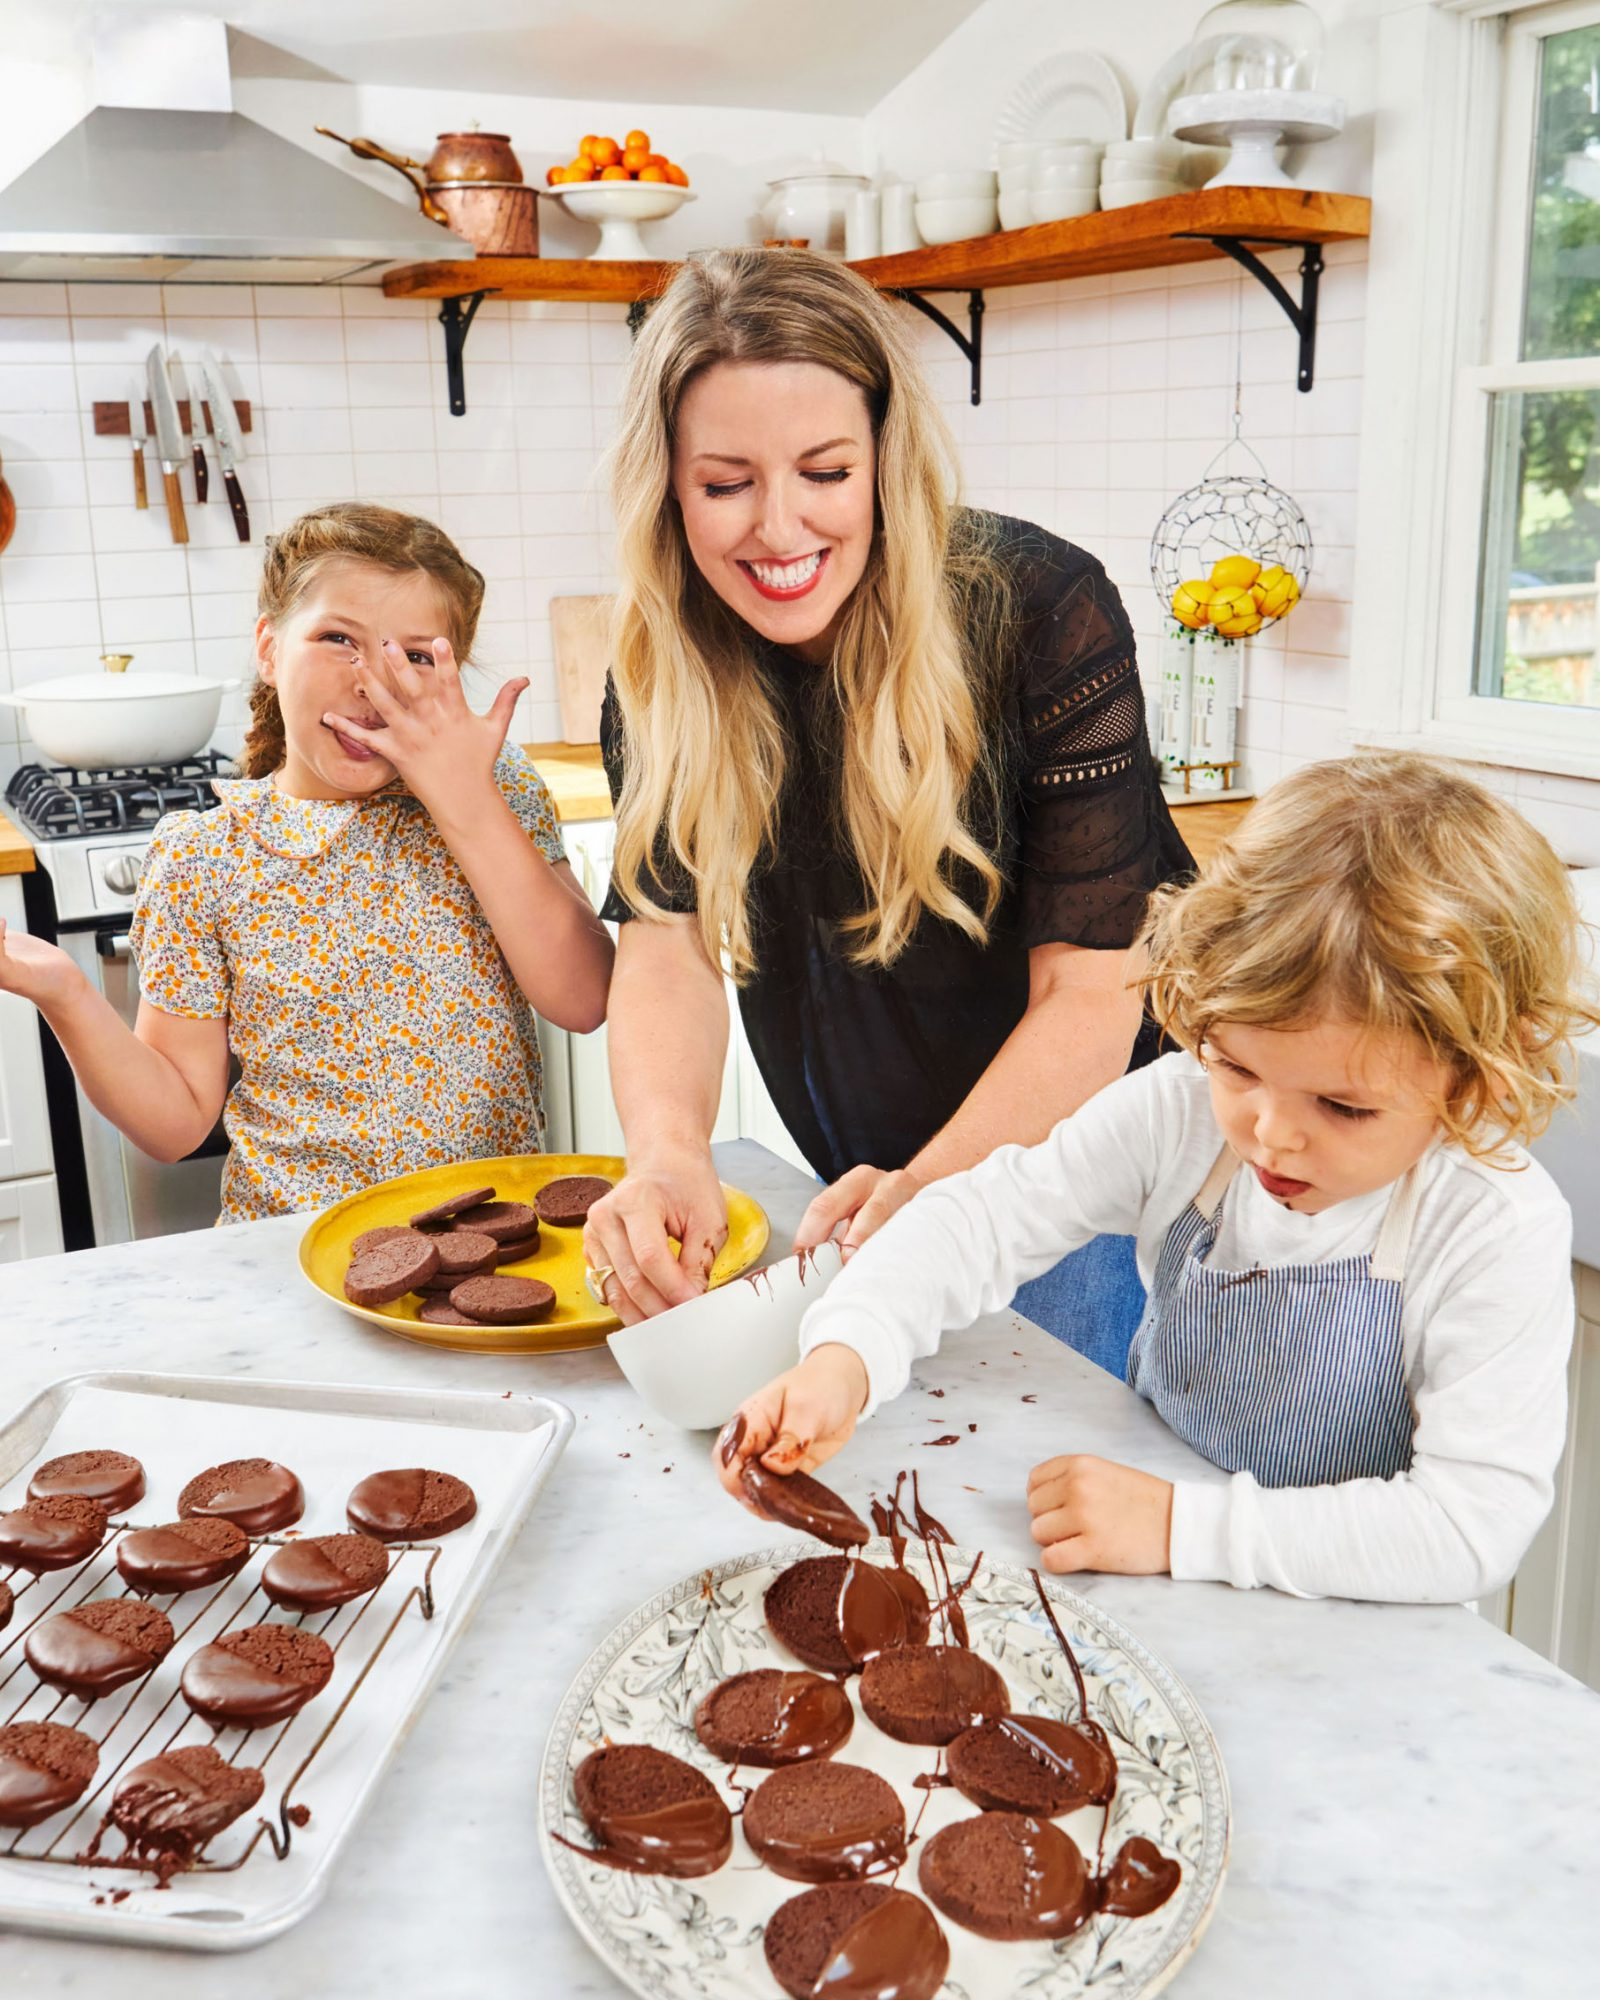 mom and kids dipping chocolate cookies